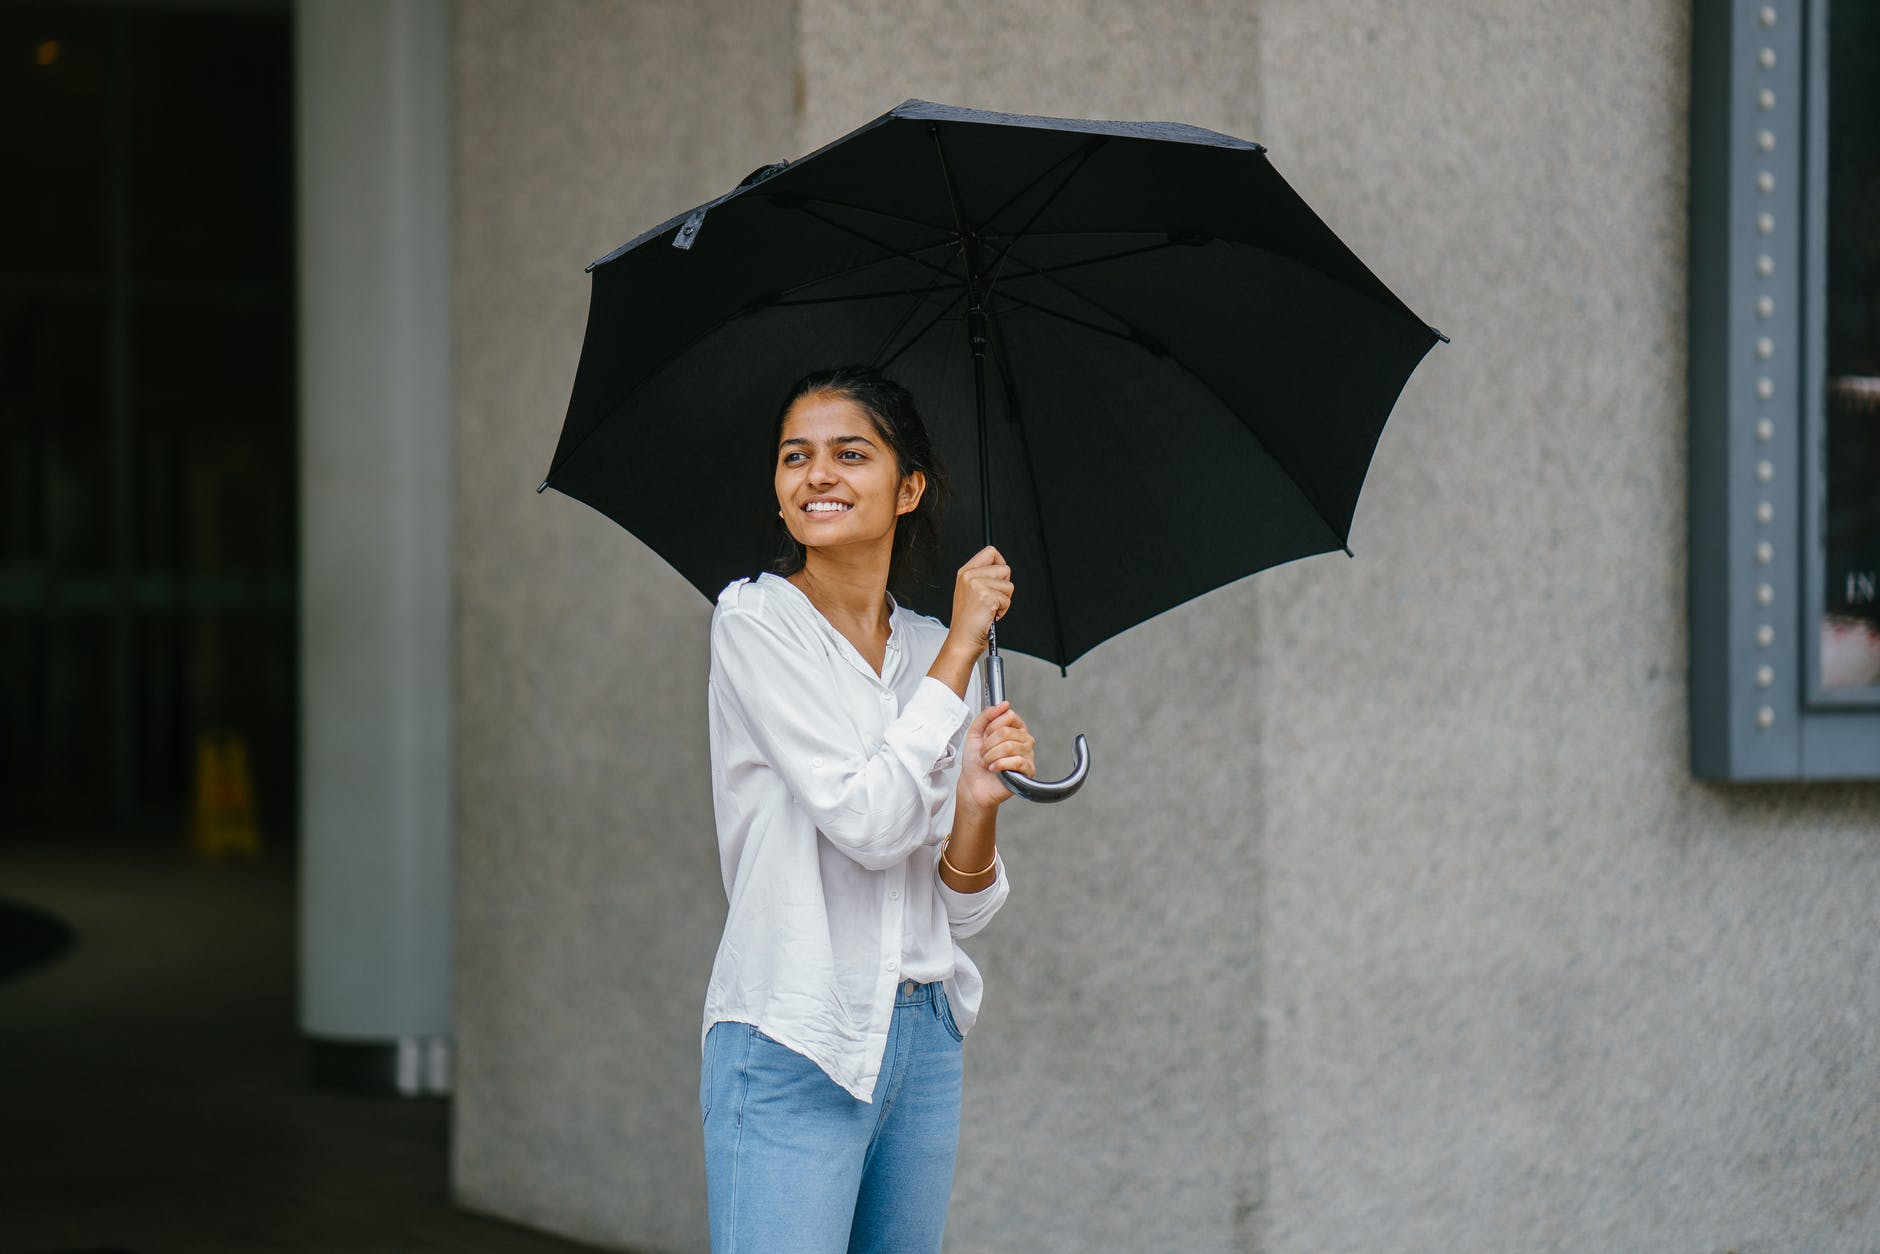 woman with black umbrella outside